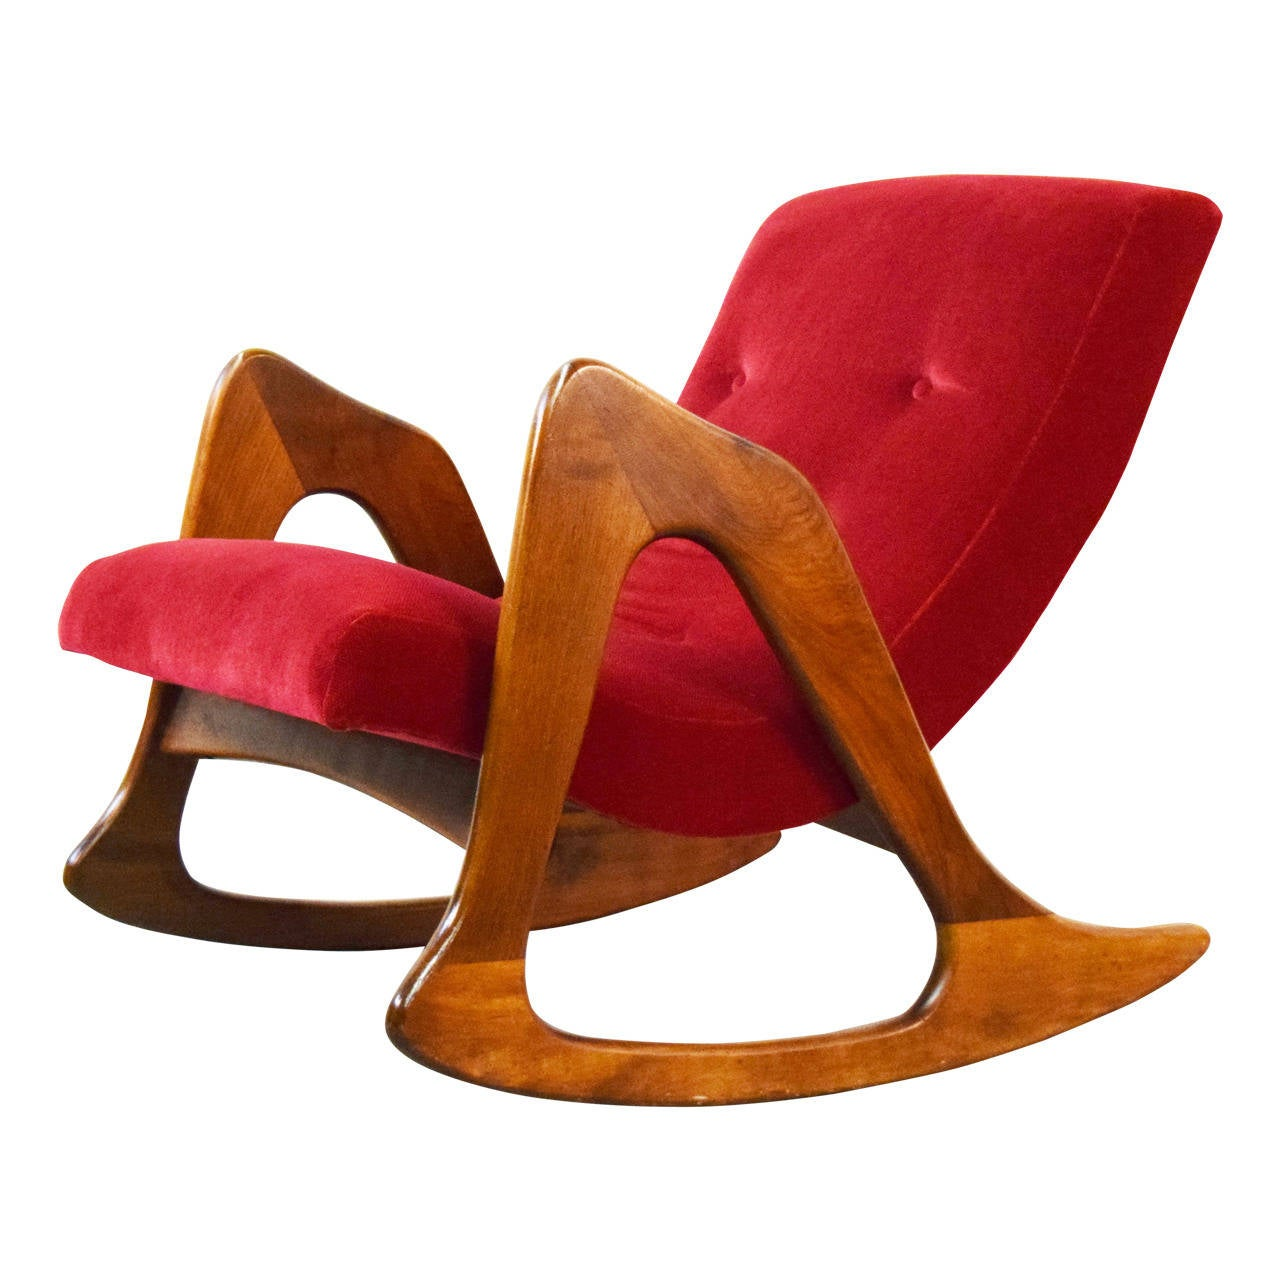 Adrian Pearsall Rocking Chair for Craft Associates